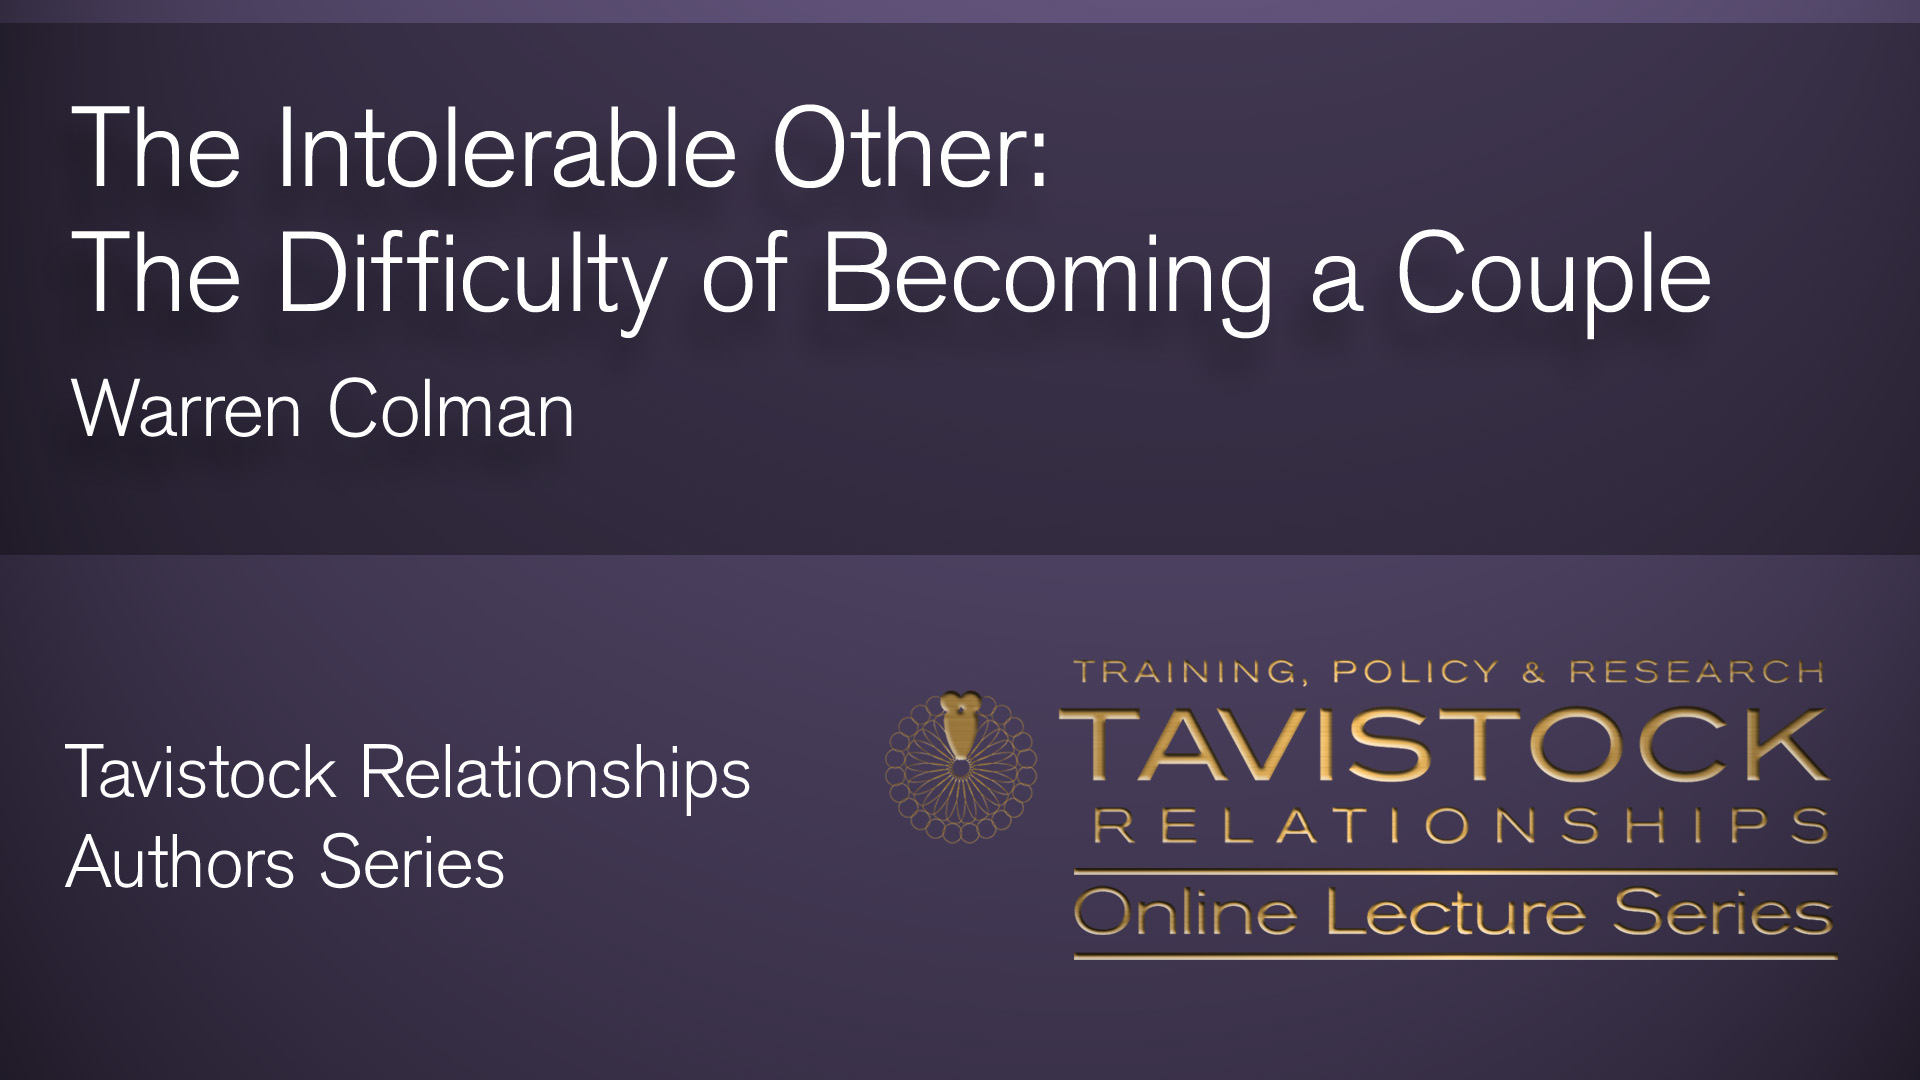 The Intolerable Other - The Difficulty of Becoming a Couple